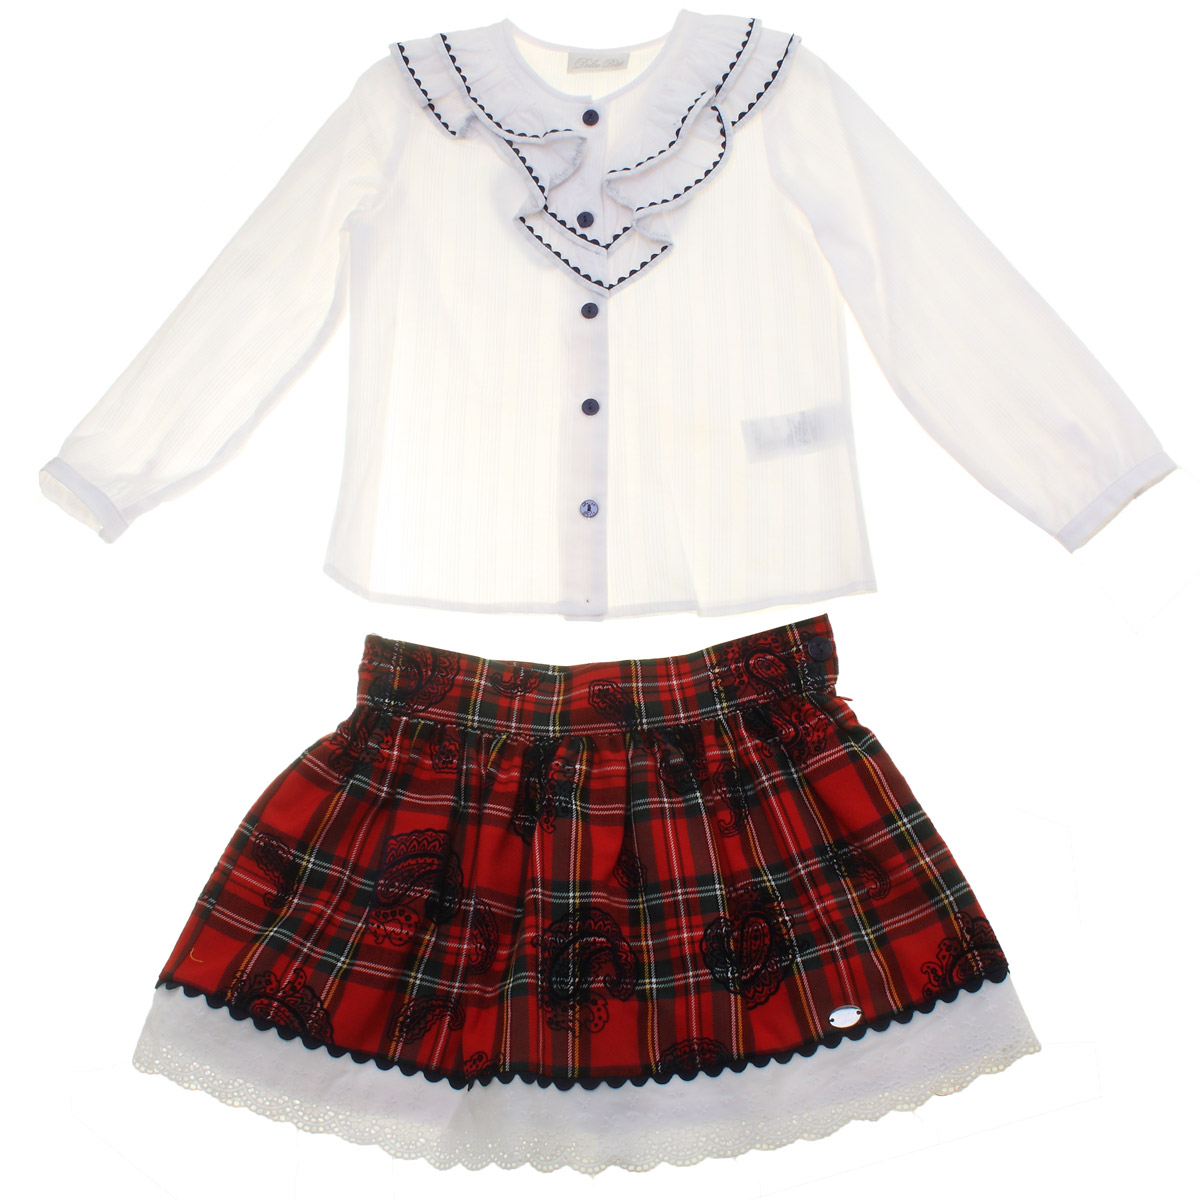 30fab0ffb8 Dolce Petit Girls White Blouse Red Tartan Skirt Outfit 3 Years To 12 Years.  Double tap to zoom